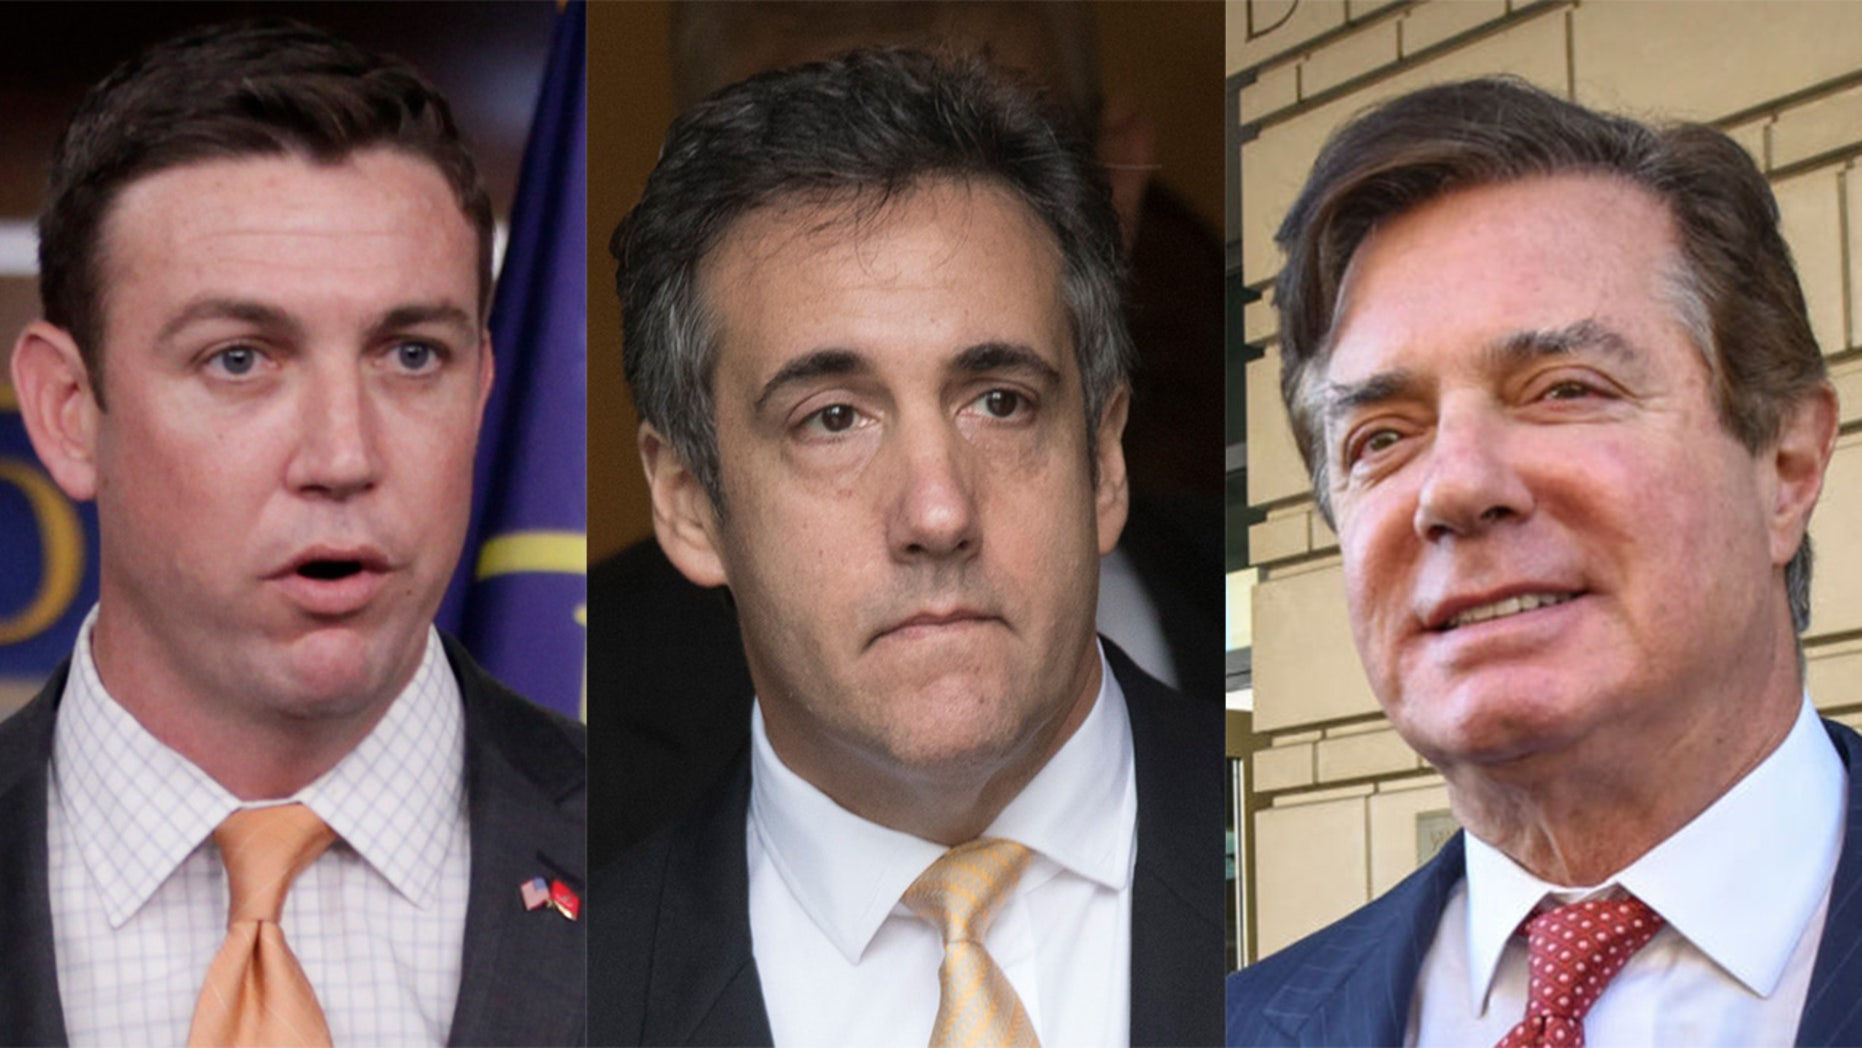 On Tuesday, Rep. Duncan Hunter, R-Calif., was indicted for allegedly using campaign funds for personal use, left; Michael Cohen, middle, pleaded guilty to tax evasion, as well as violating campaign finance law; and Paul Manafort, right, was convicted on 8 counts.